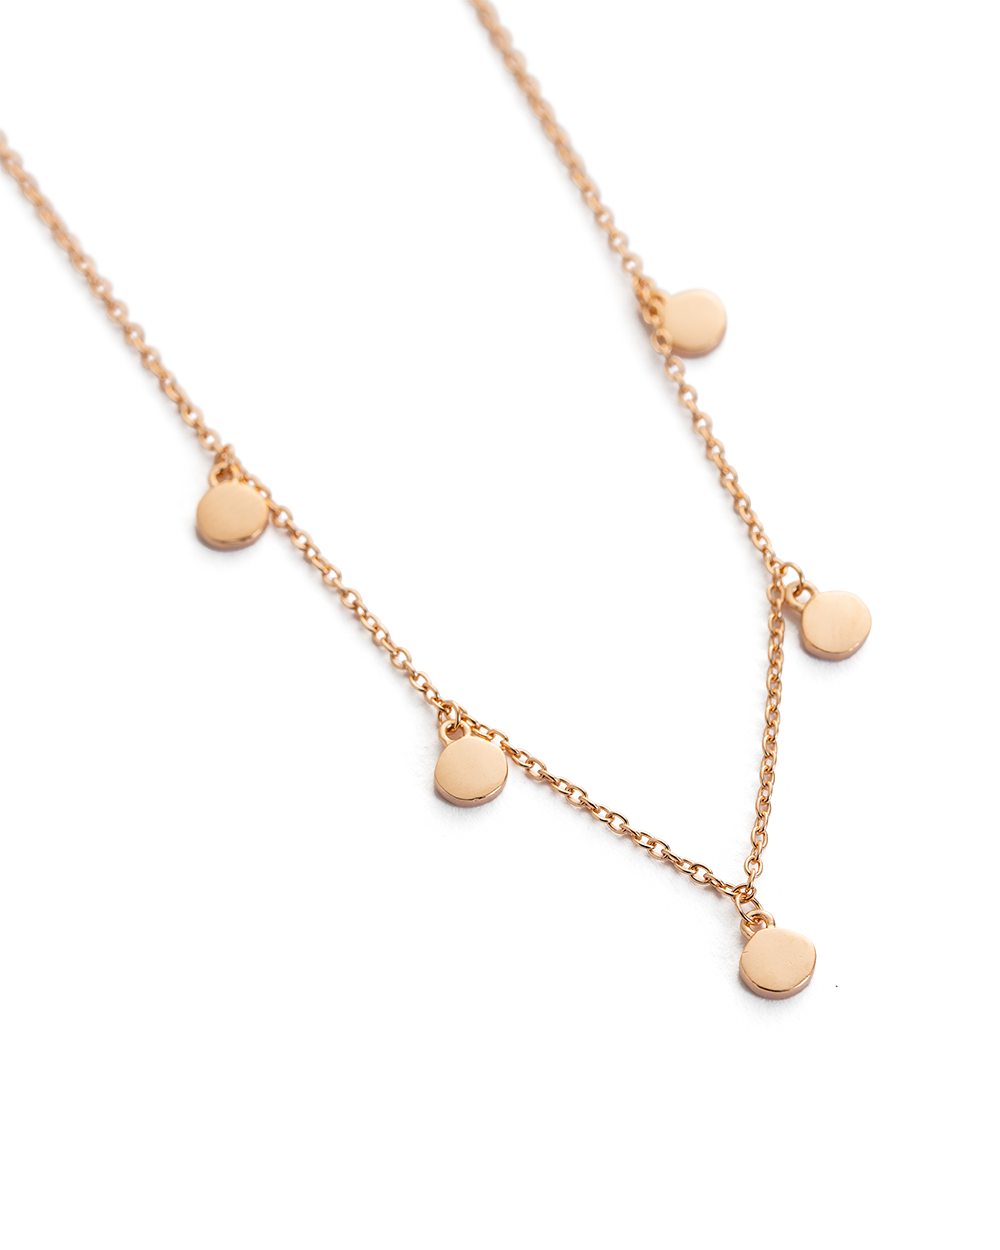 TRAVEL-STORIES-NECKLACE-18K-ROSE-GOLD-PLATED-02